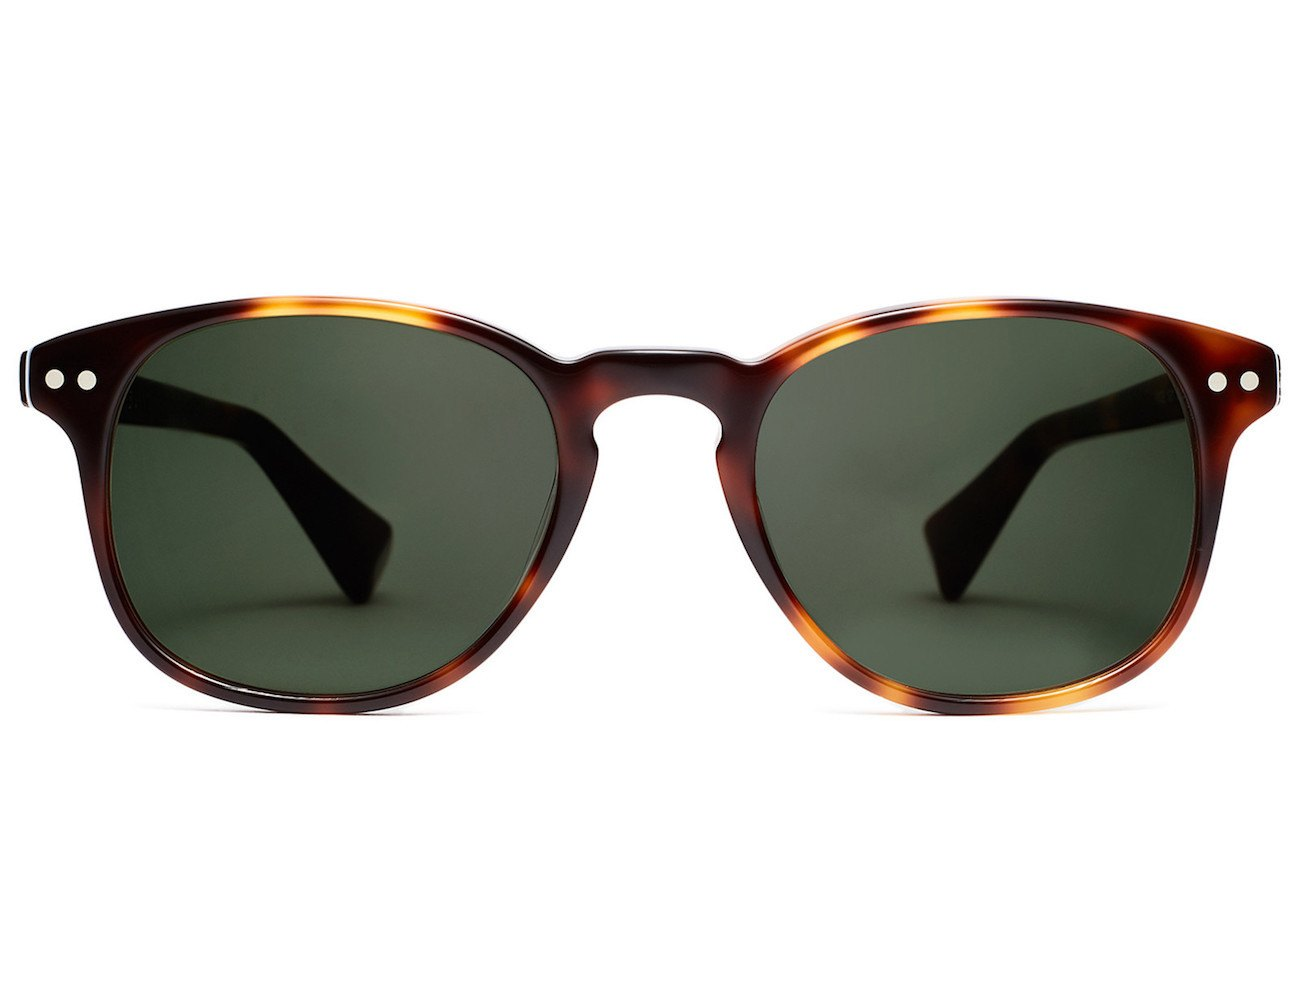 HYDE Sunglasses by MVMT